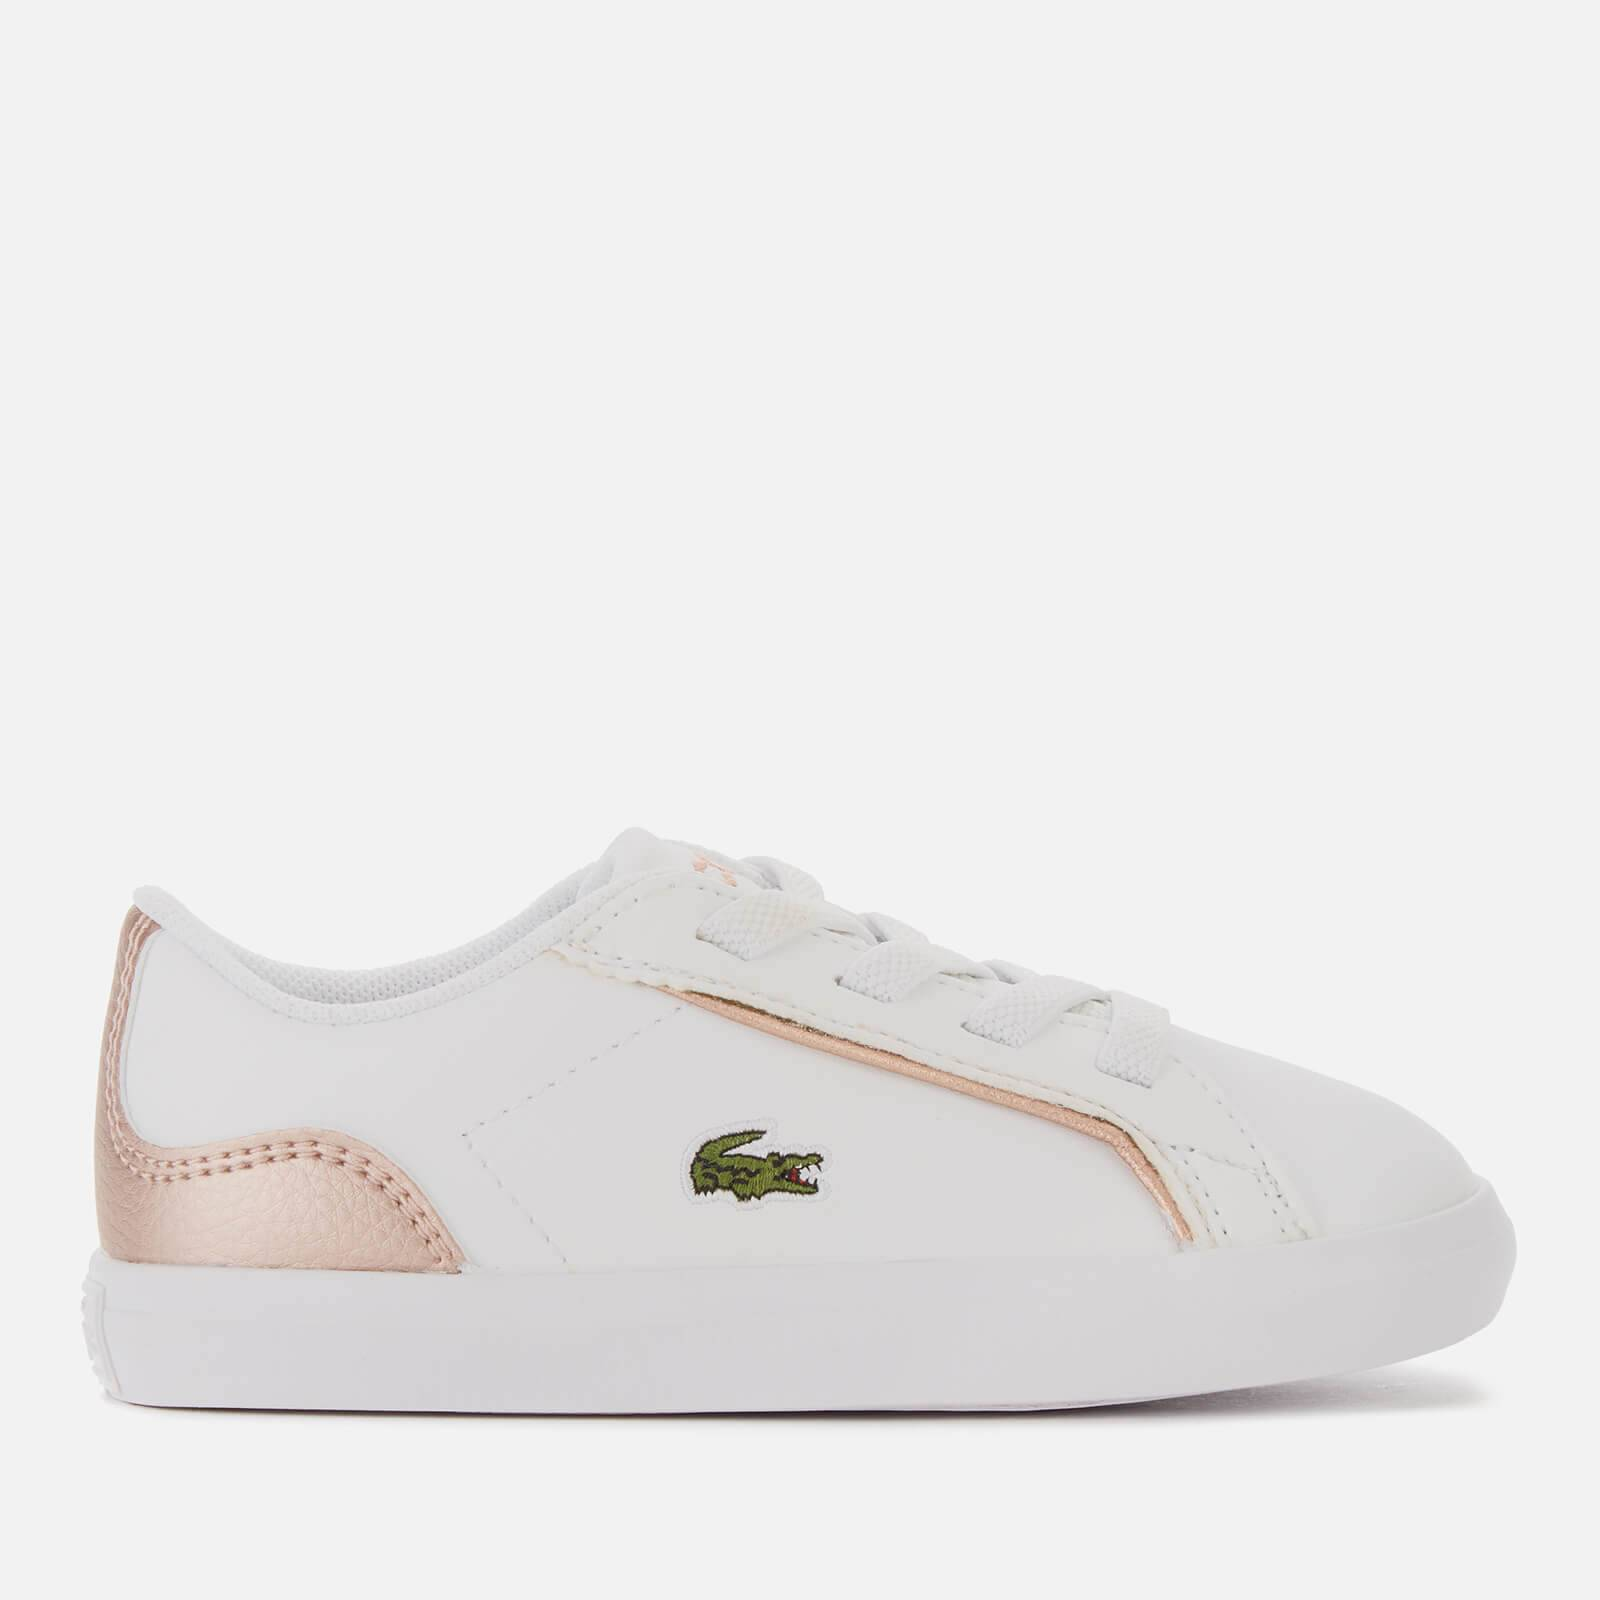 Lacoste Toddlers' Lerond Trainers - White/Pink - UK 3 Toddler